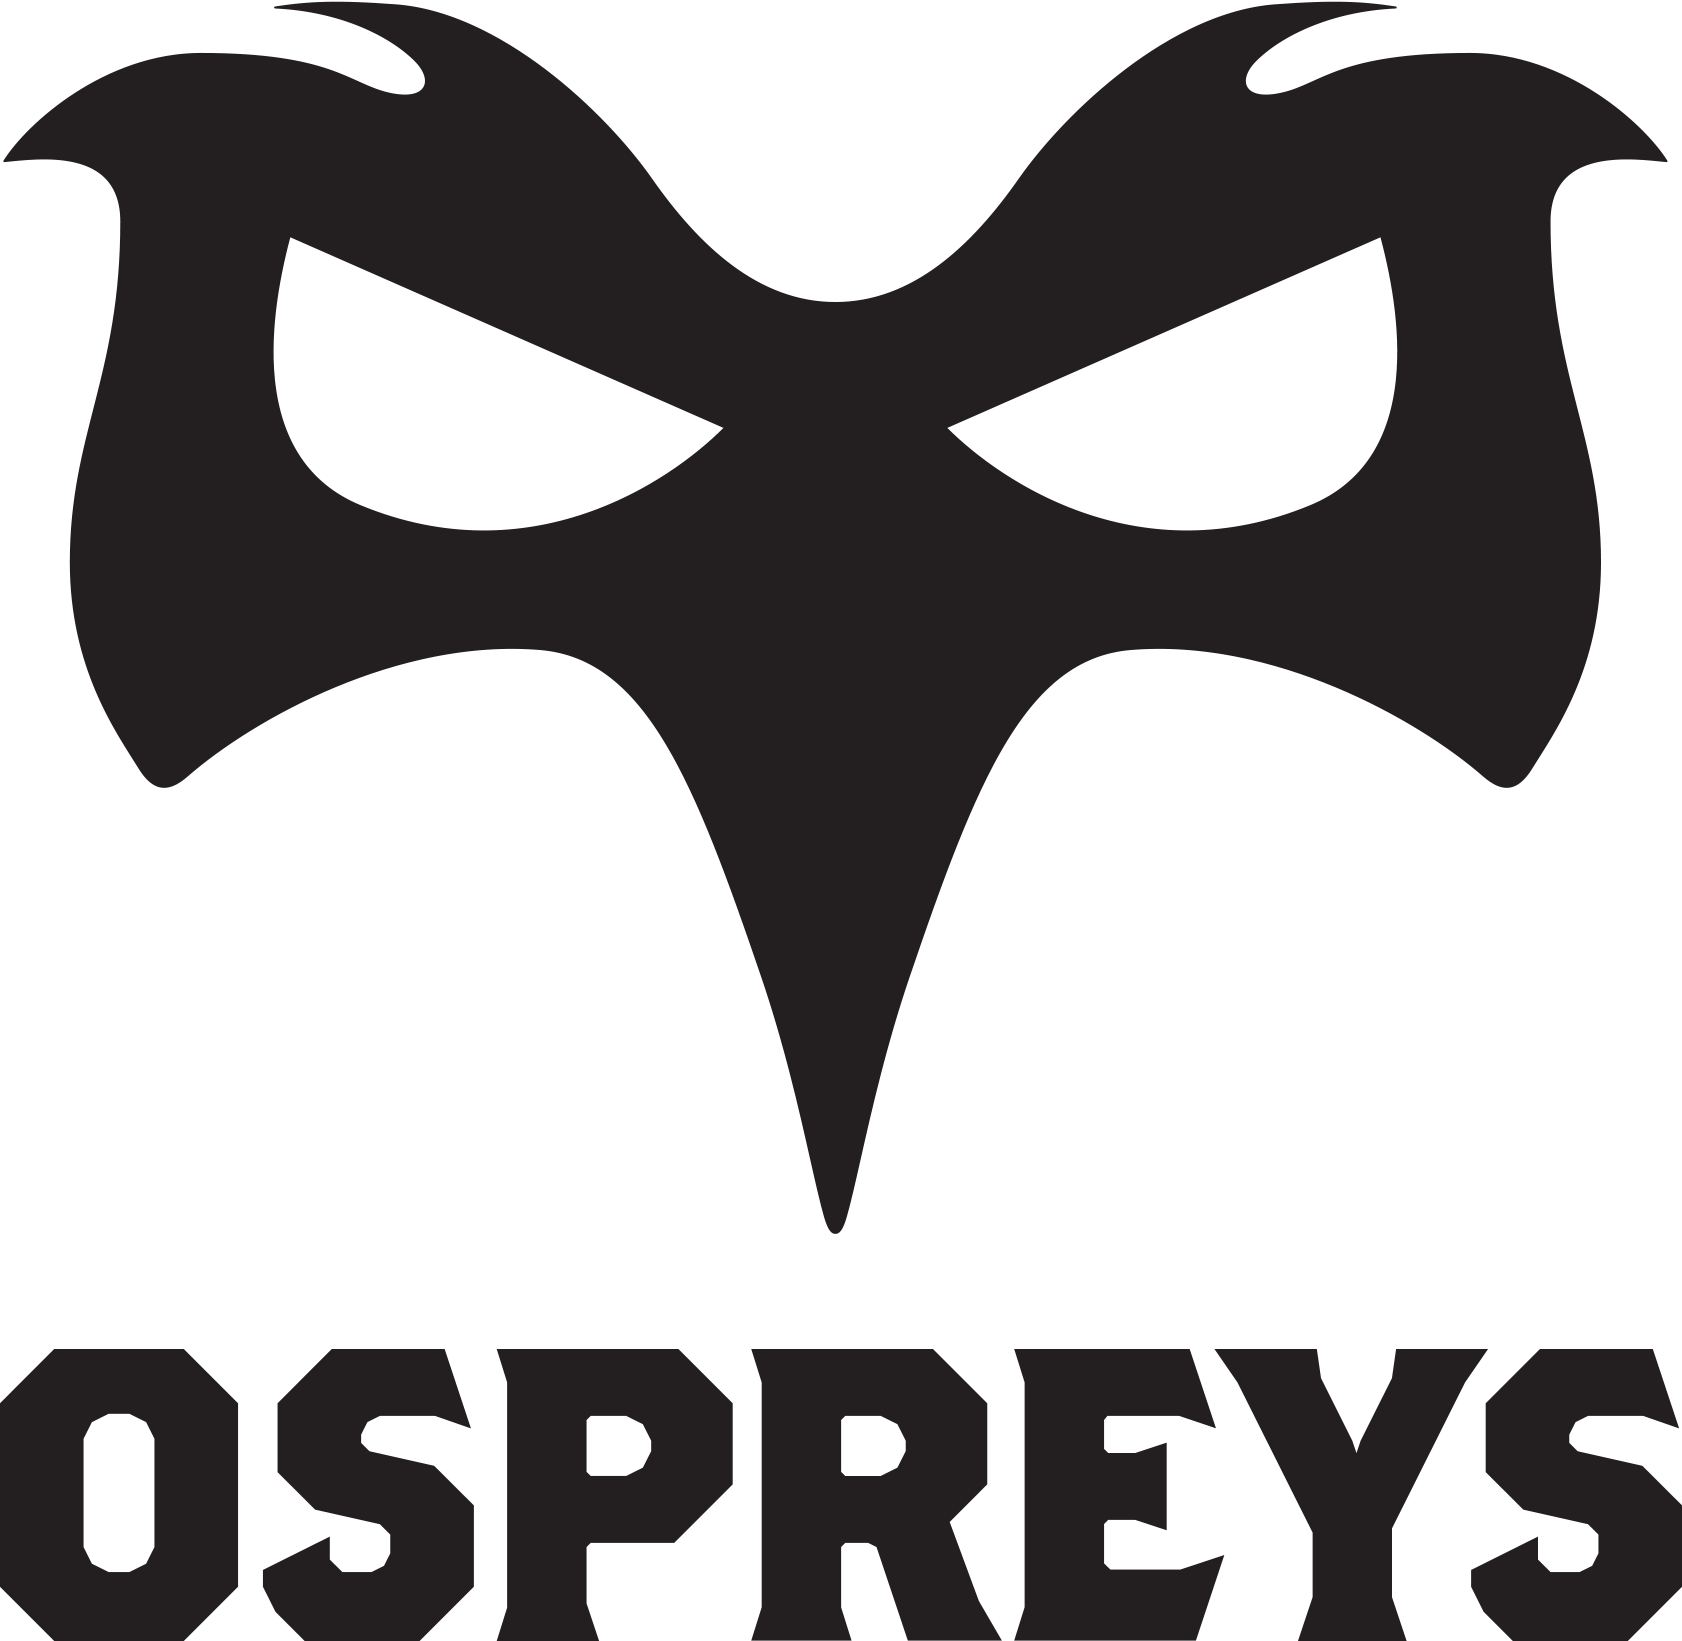 ospreys logo in black with clear background